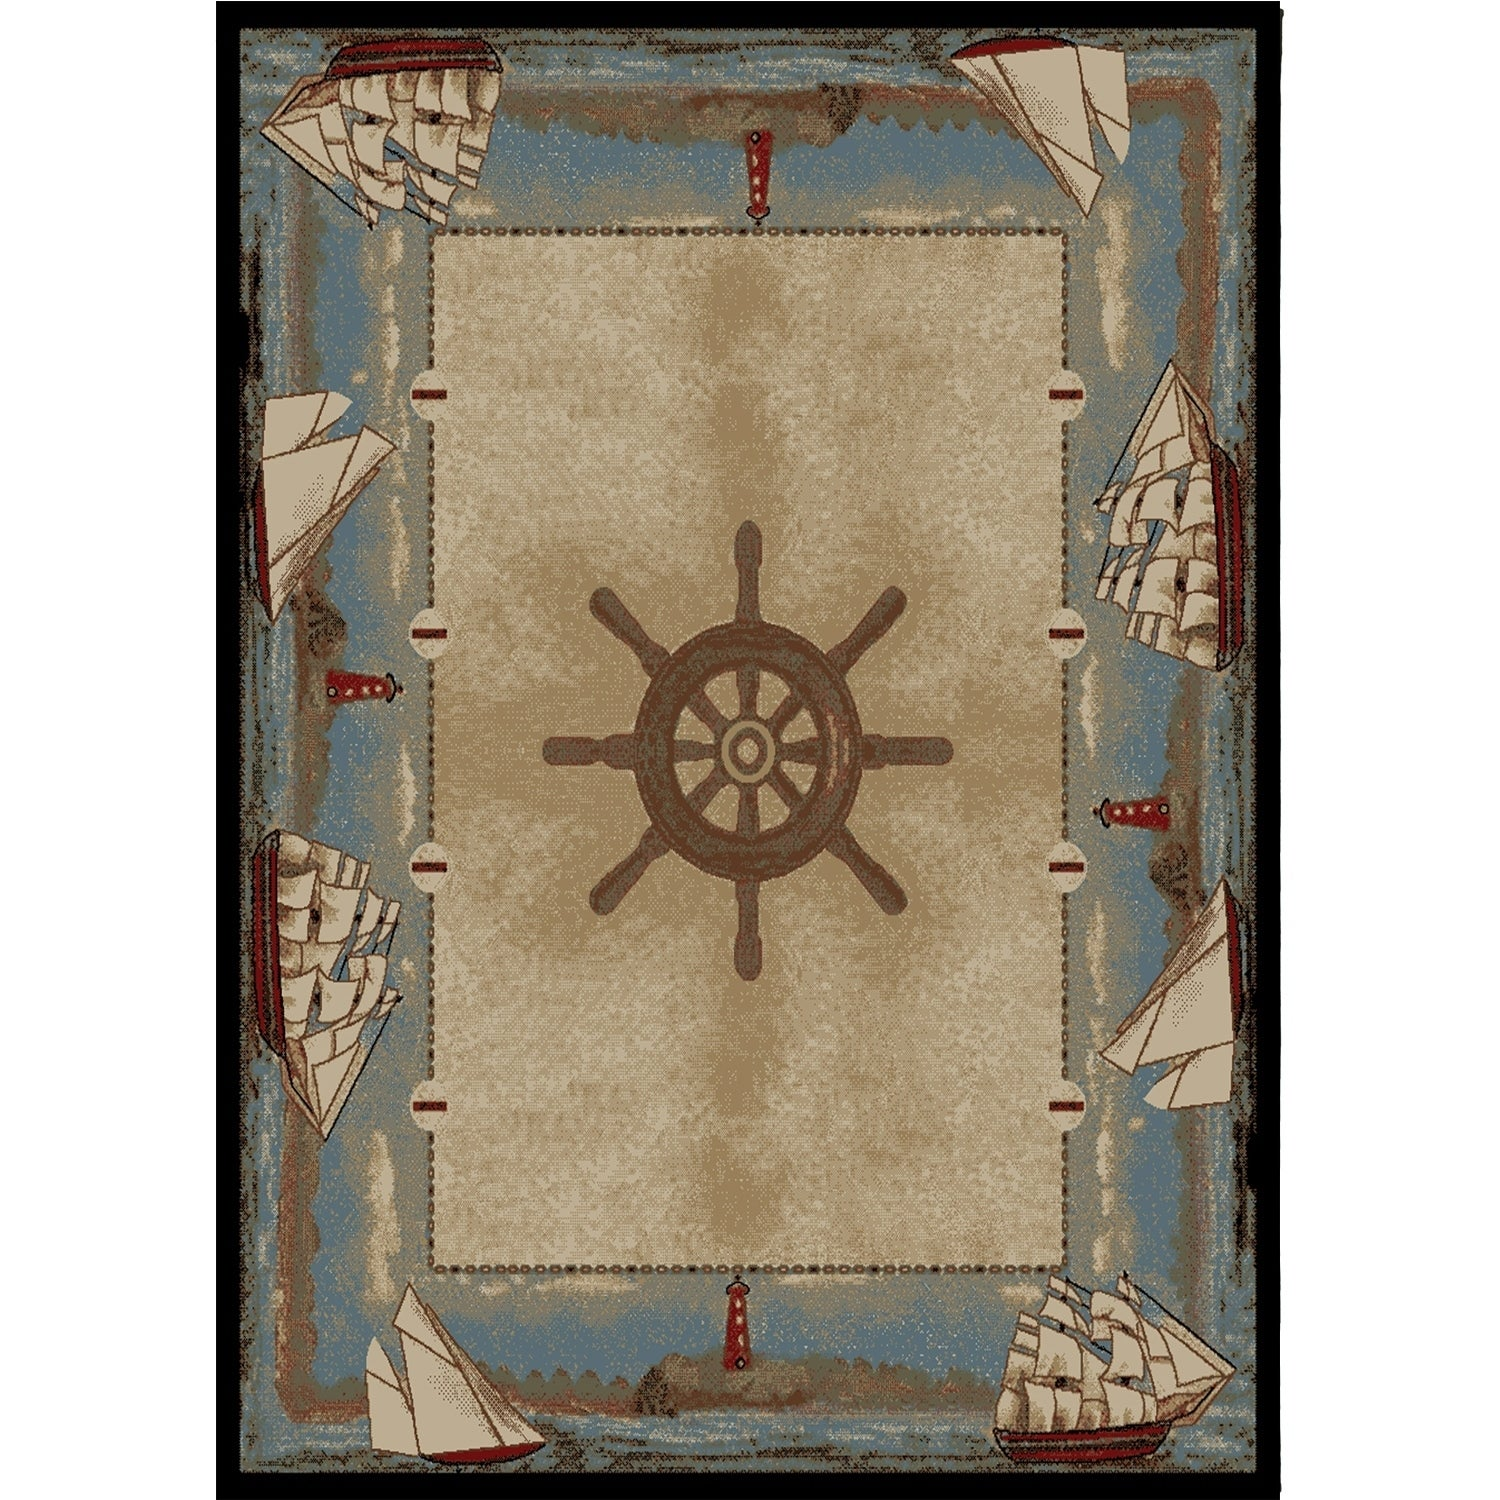 Coastal Sailboat Key West Beach Blue Area Rug (5'3 x 7'3)...